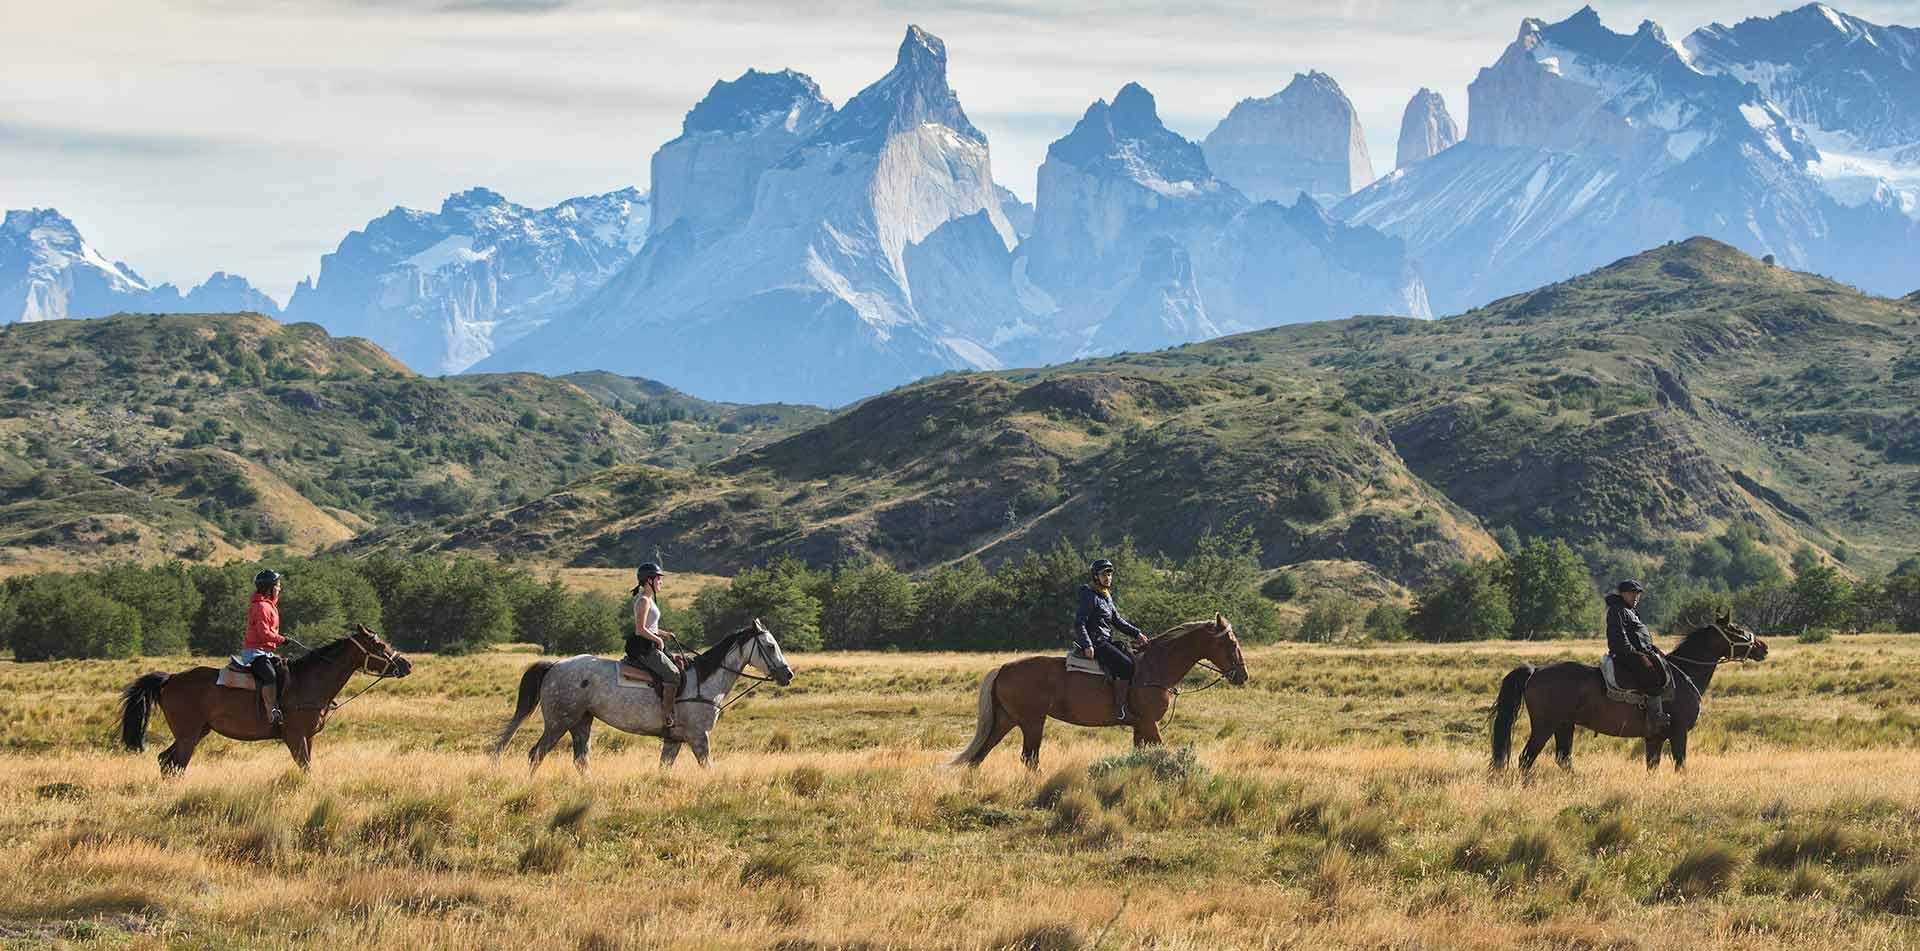 South America Chile Travel Tour Experience Hiking Adventure Relax - luxury vacation destinations